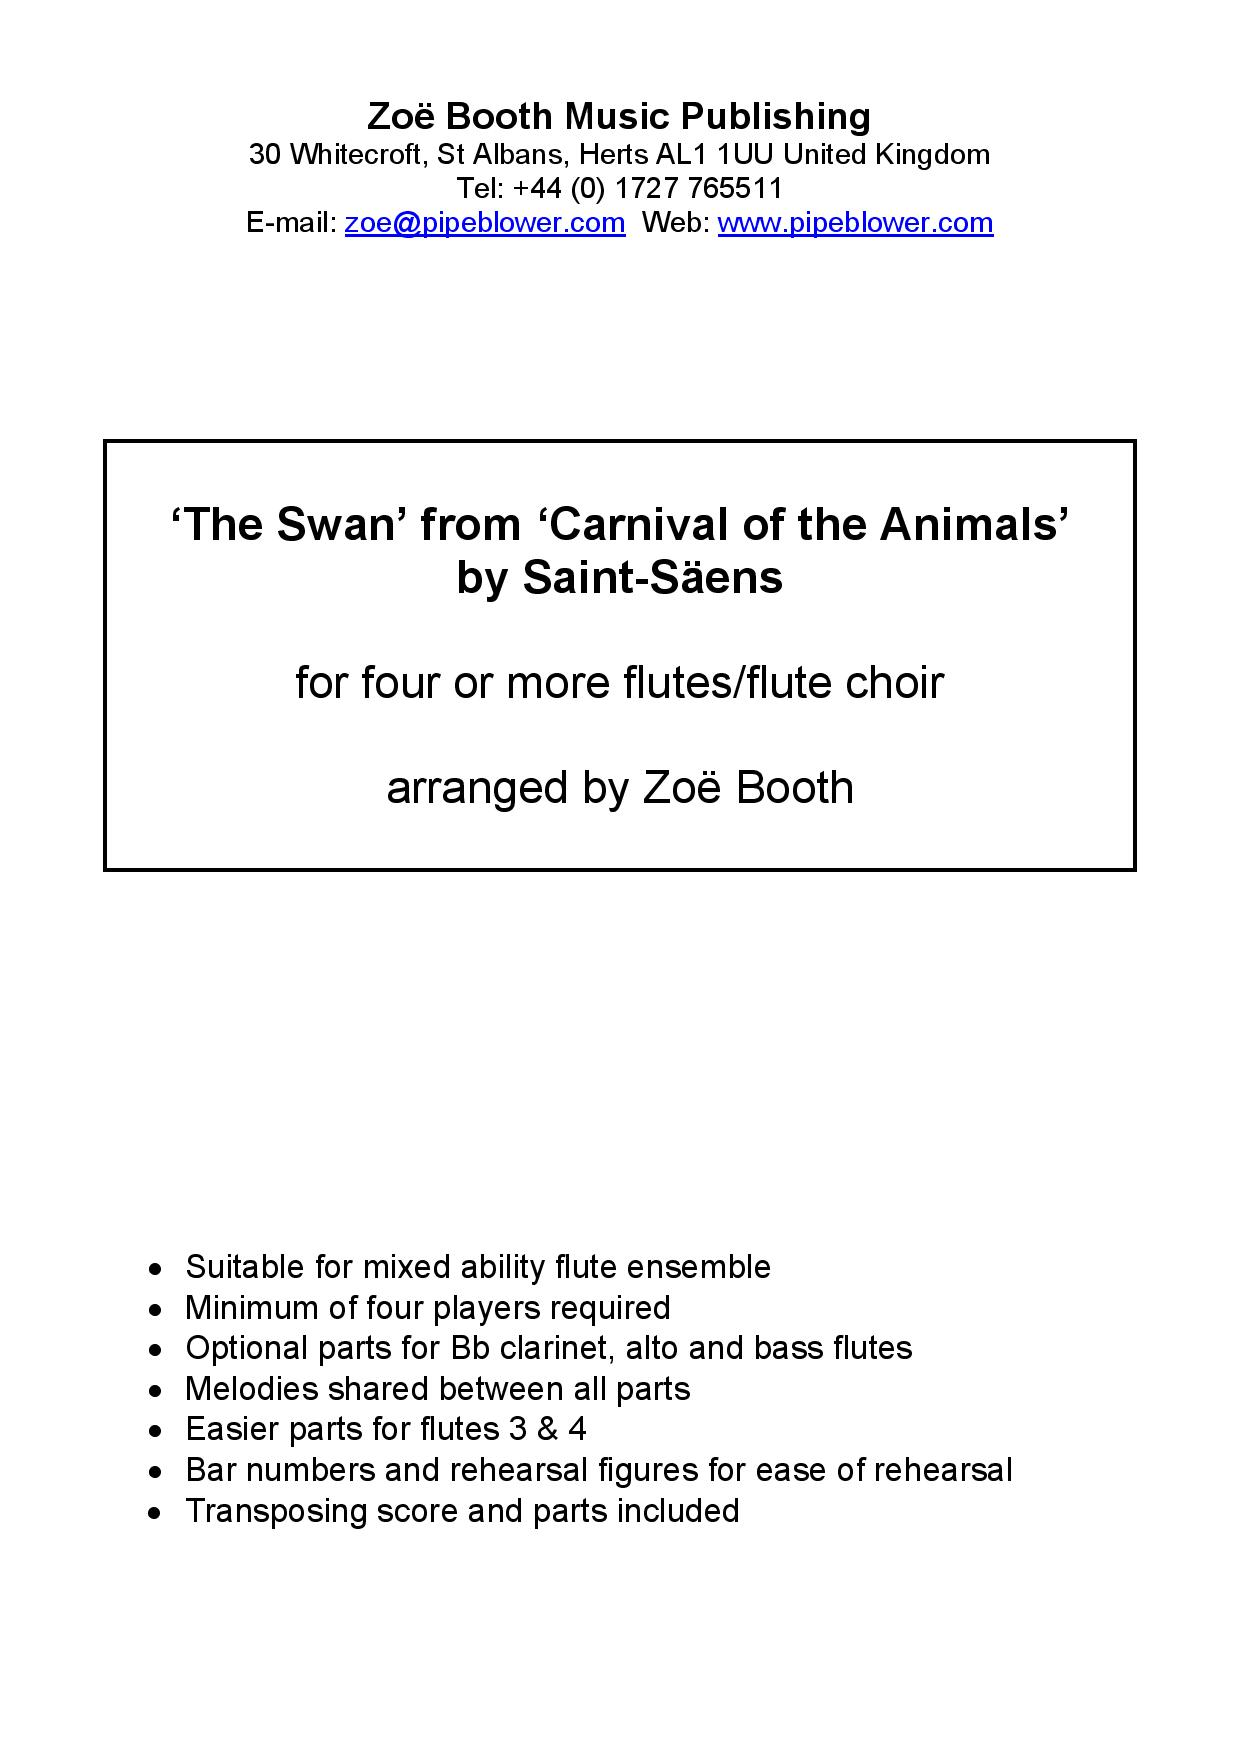 The Swan by Saint-Saëns  arranged by Zoë Booth for four or more flutes/flute choir